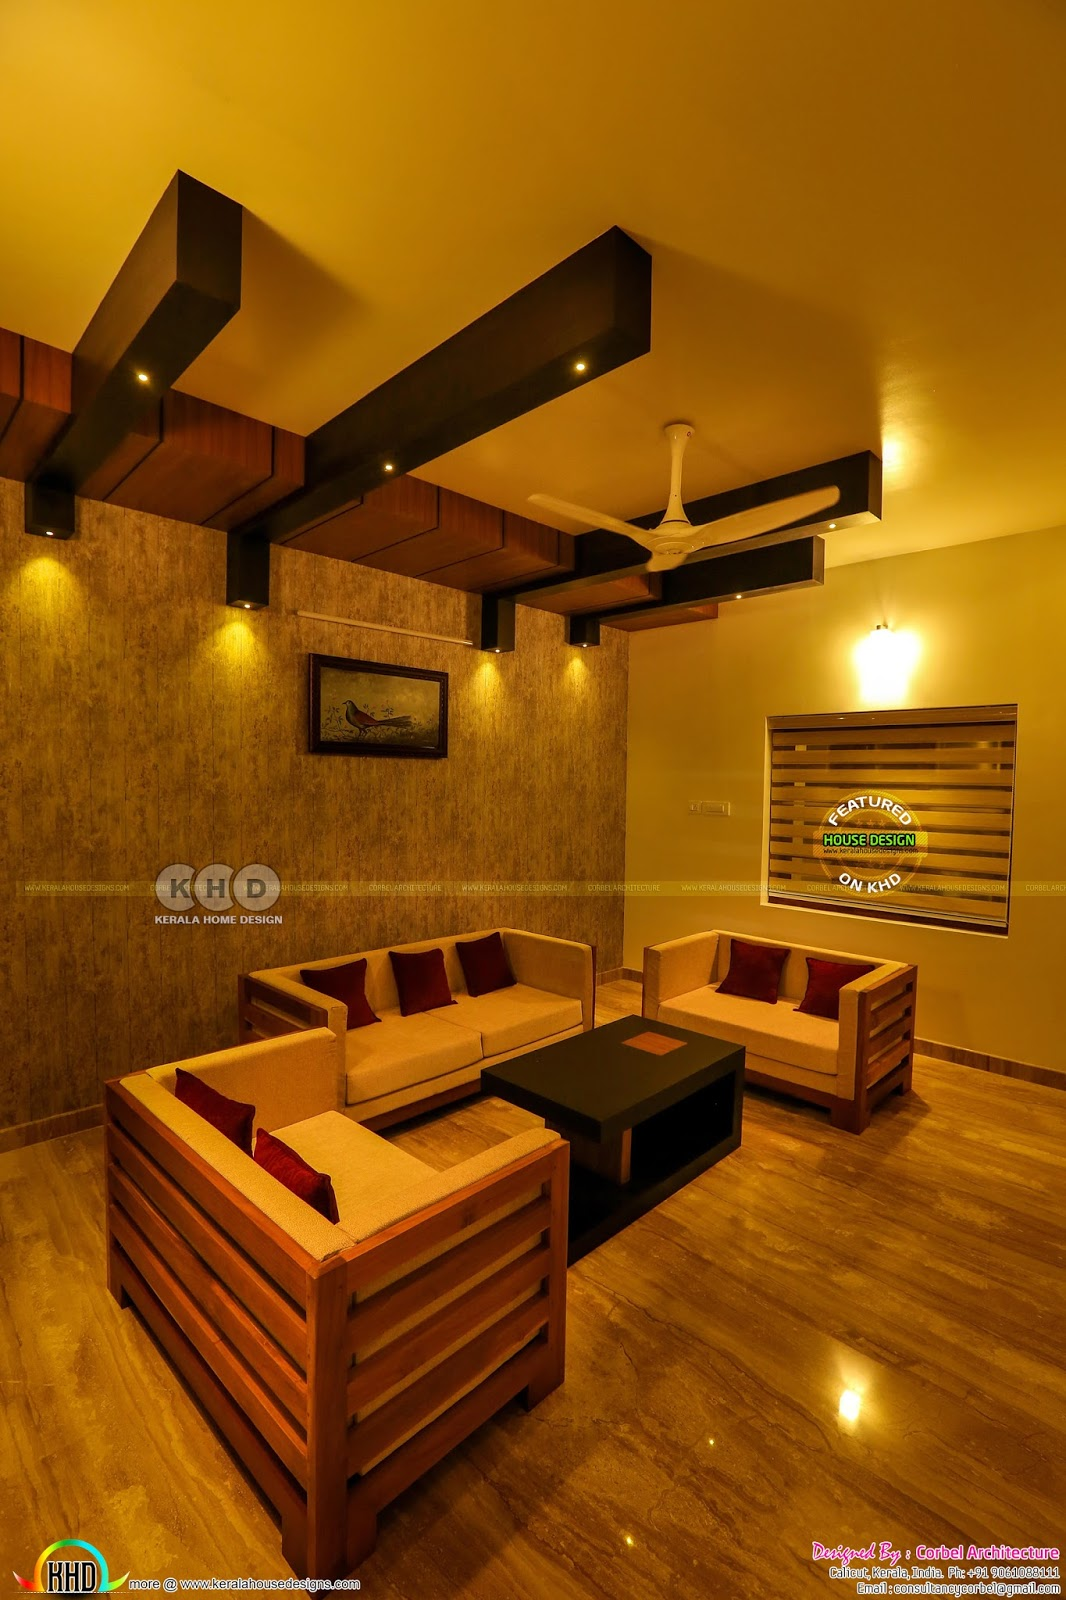 Finished Interior Designs In Kerala: Interior And Exterior Photos Of Finished House In Kerala